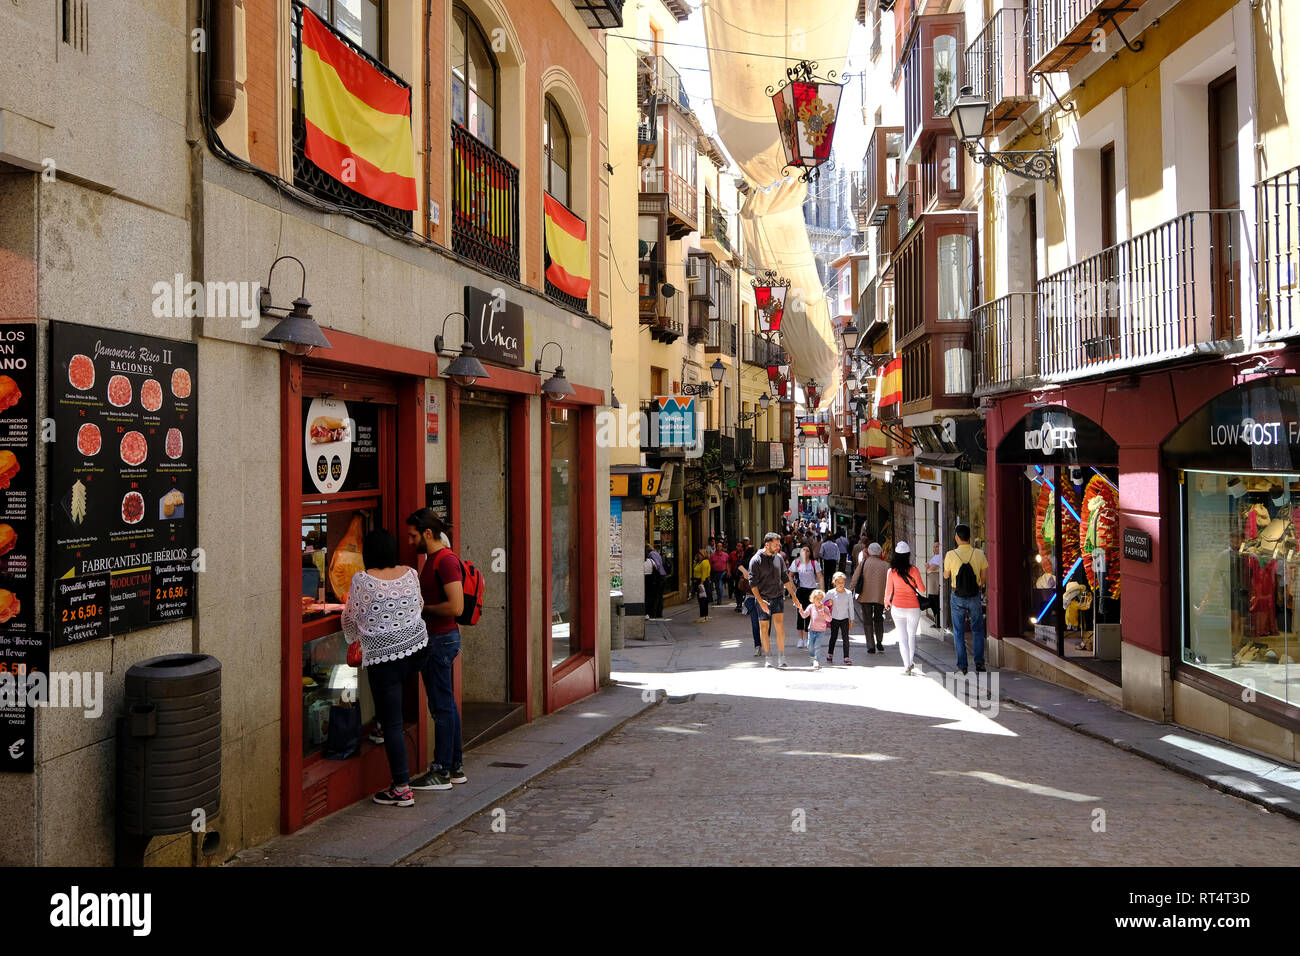 typical alleyway in Toledo, Castilla la Mancha, Spain Stock Photo